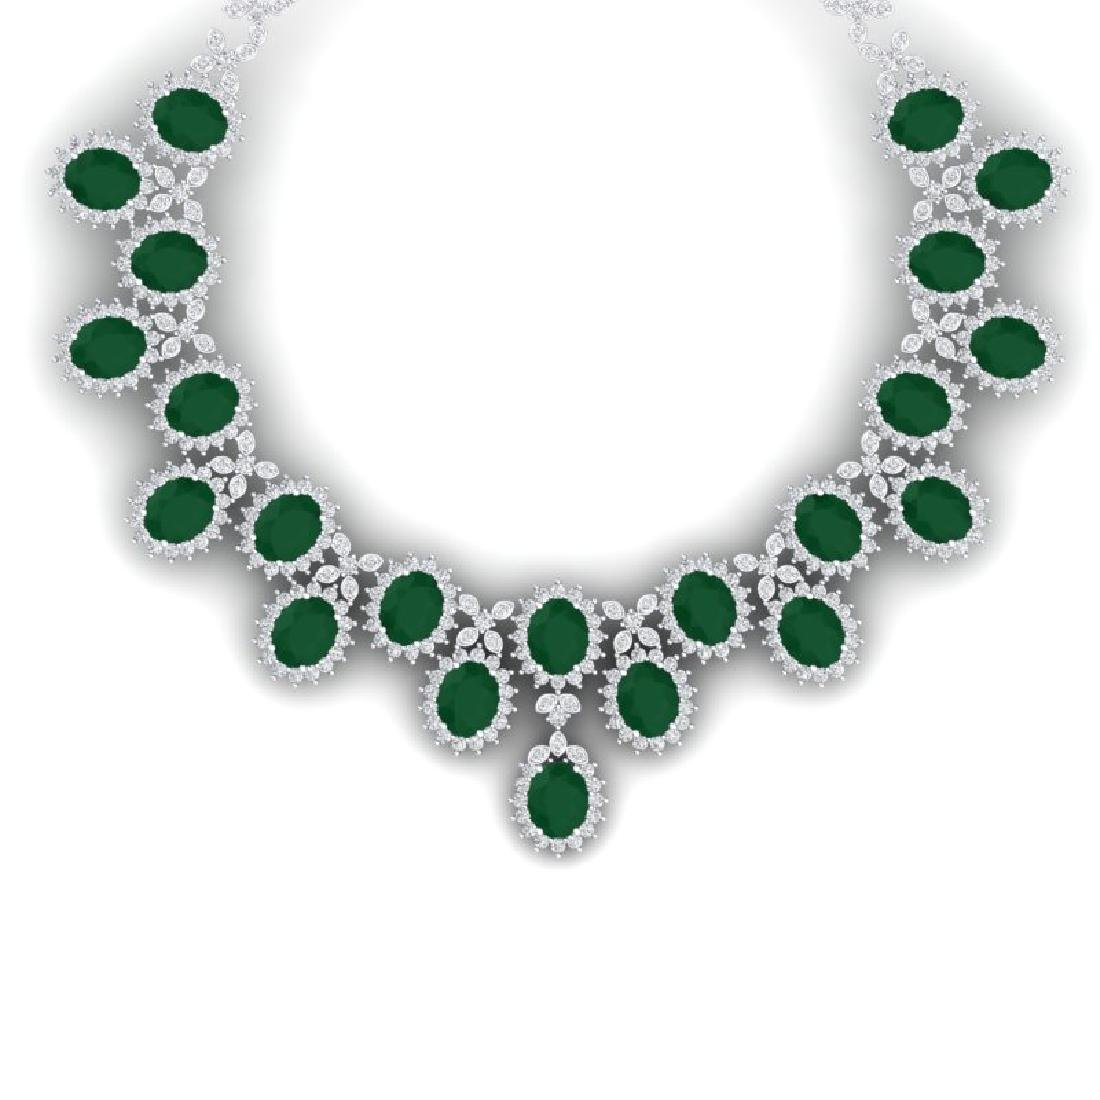 81 CTW Royalty Emerald & VS Diamond Necklace 18K White